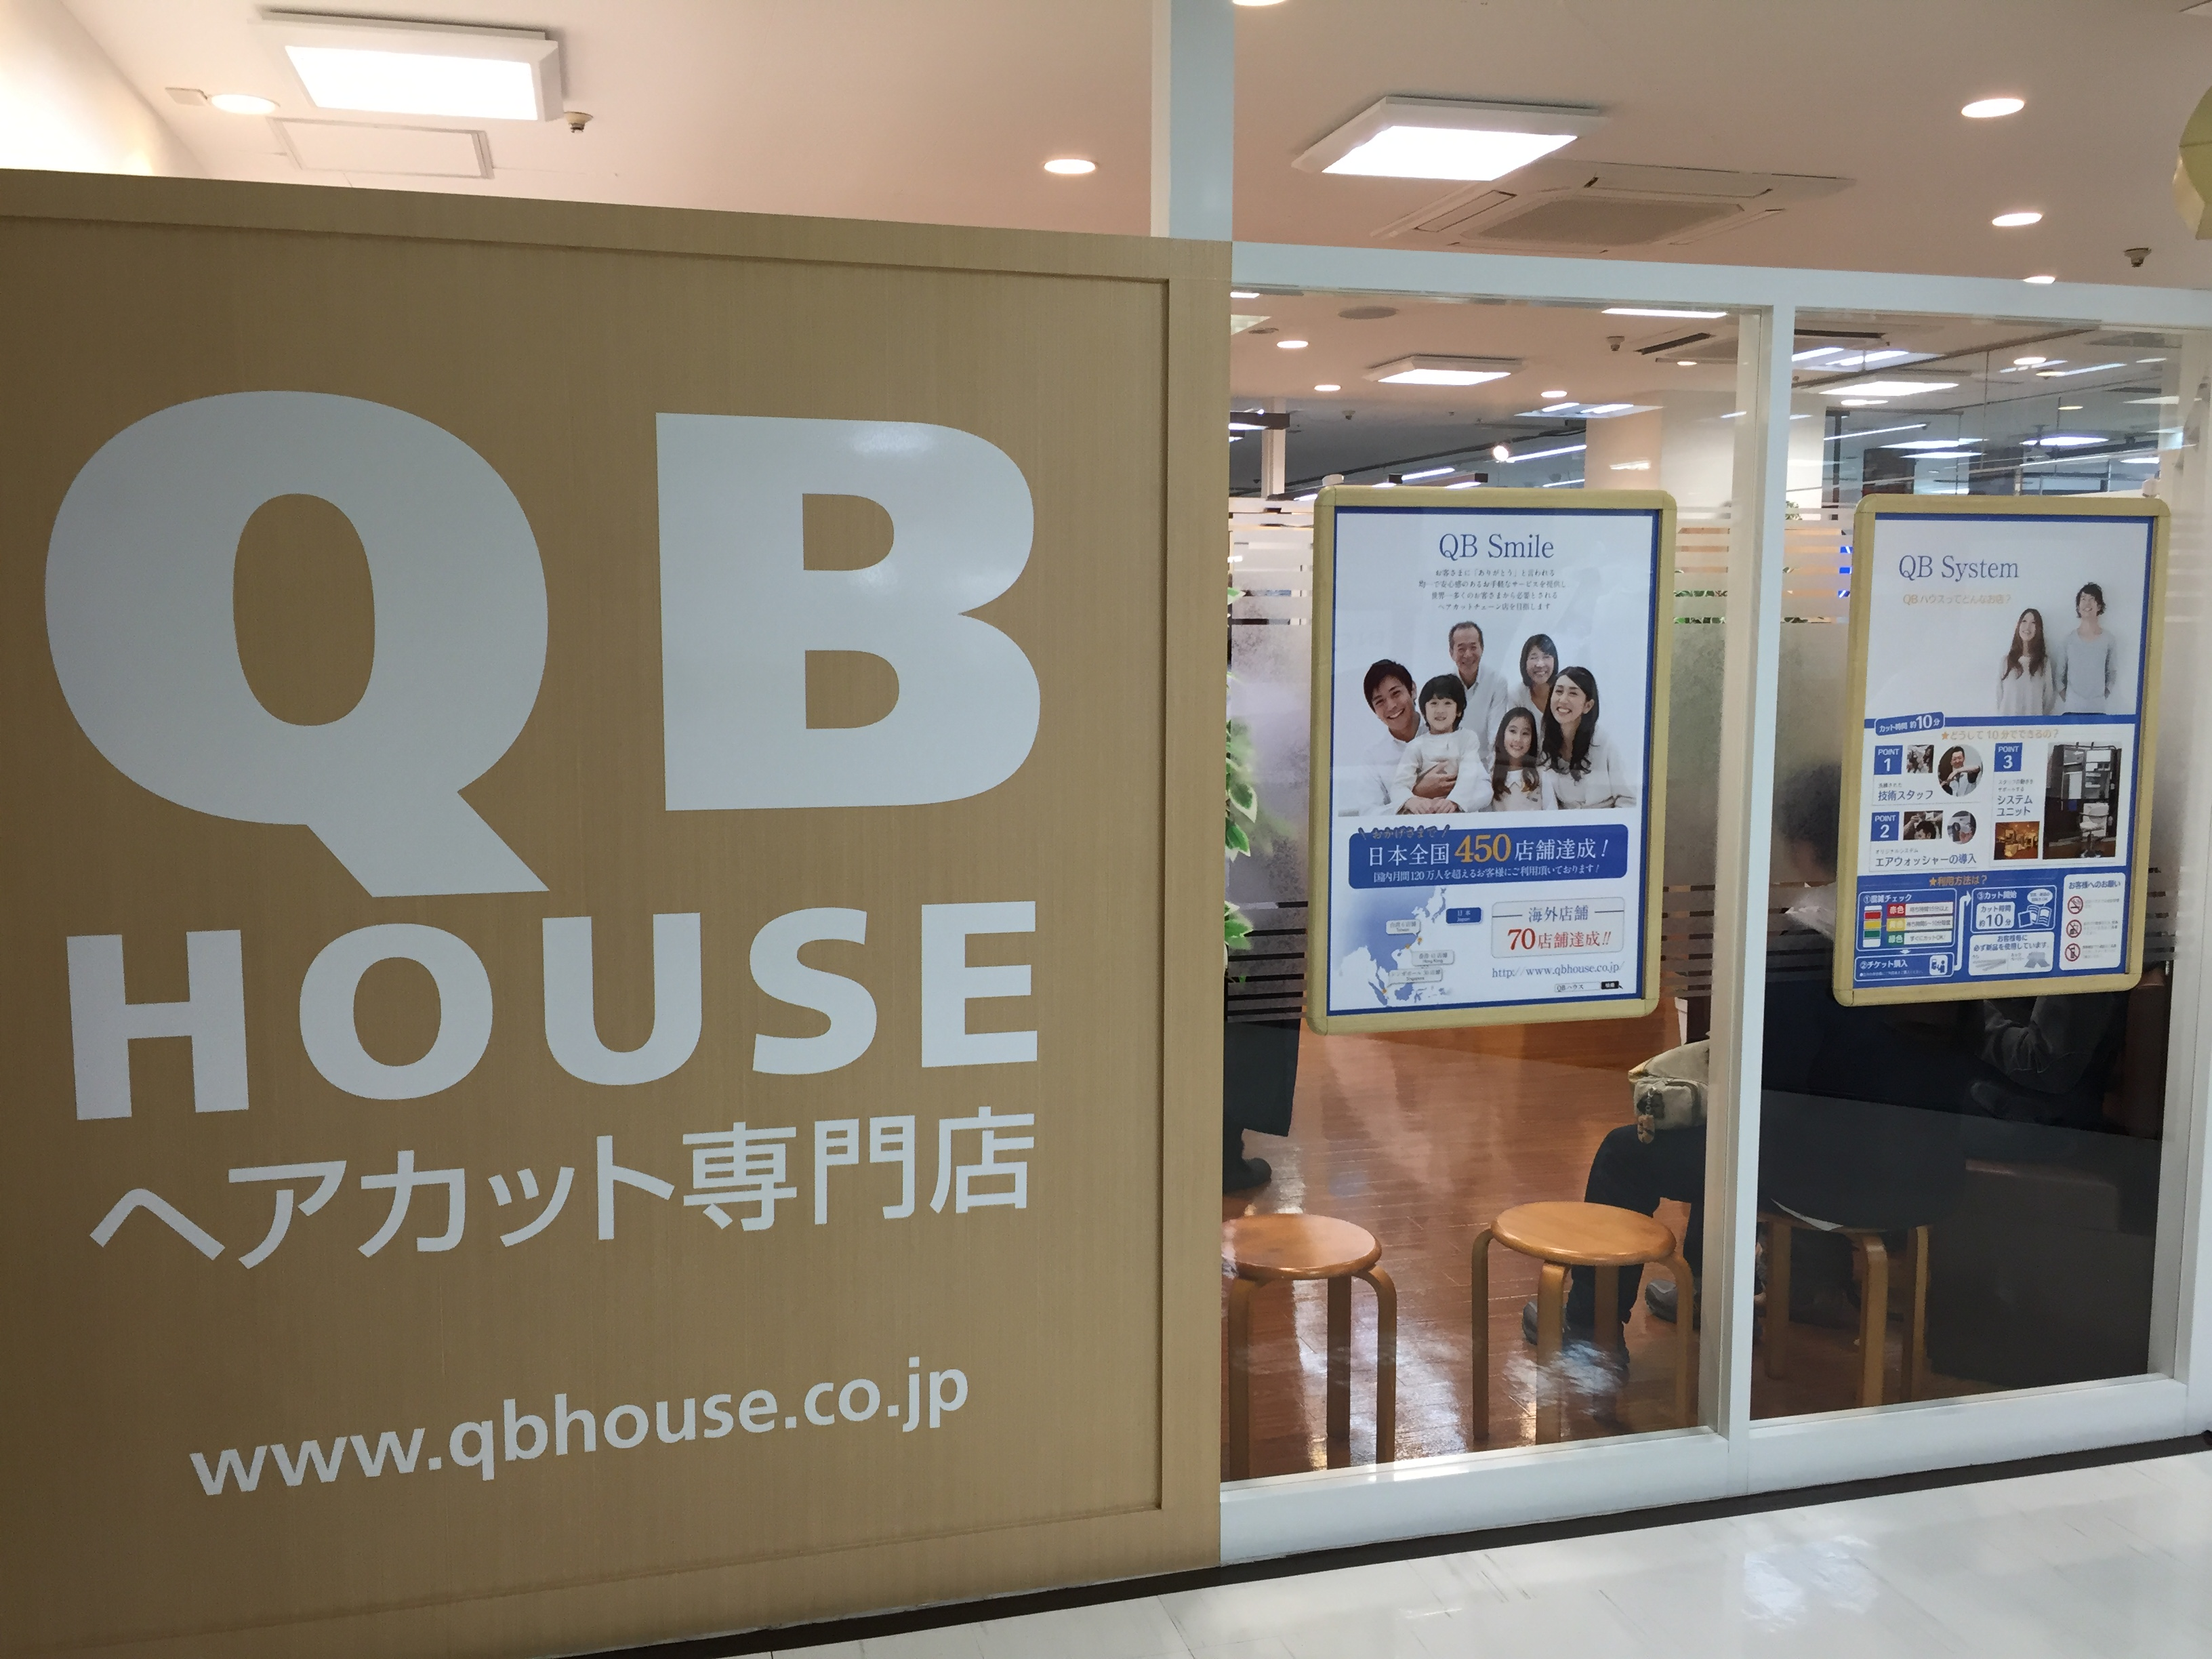 qbhouse002